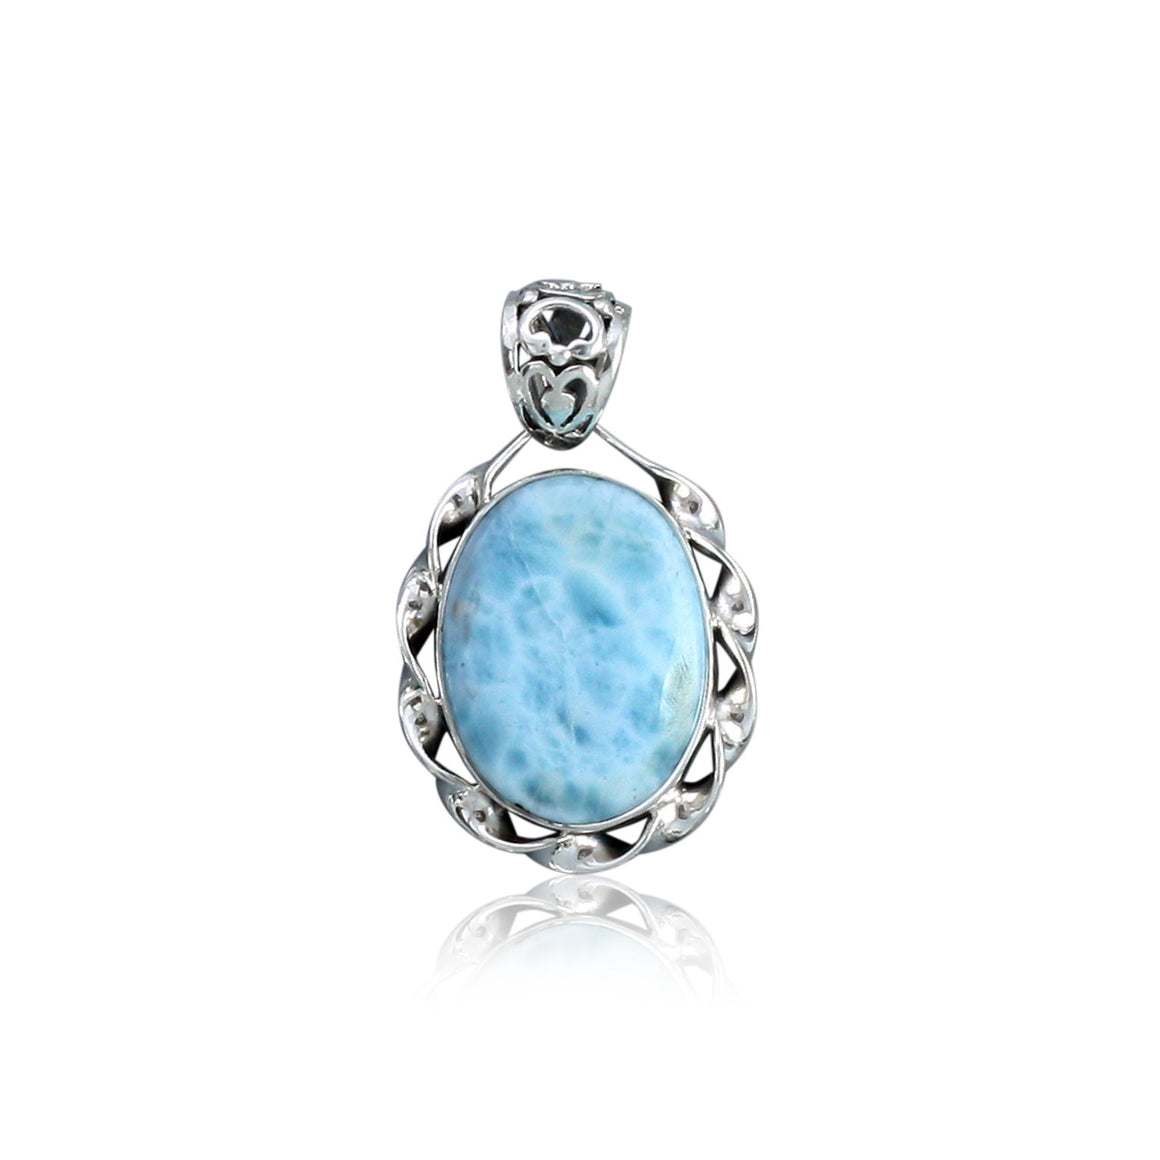 Larimar Pendant - One of a Kind